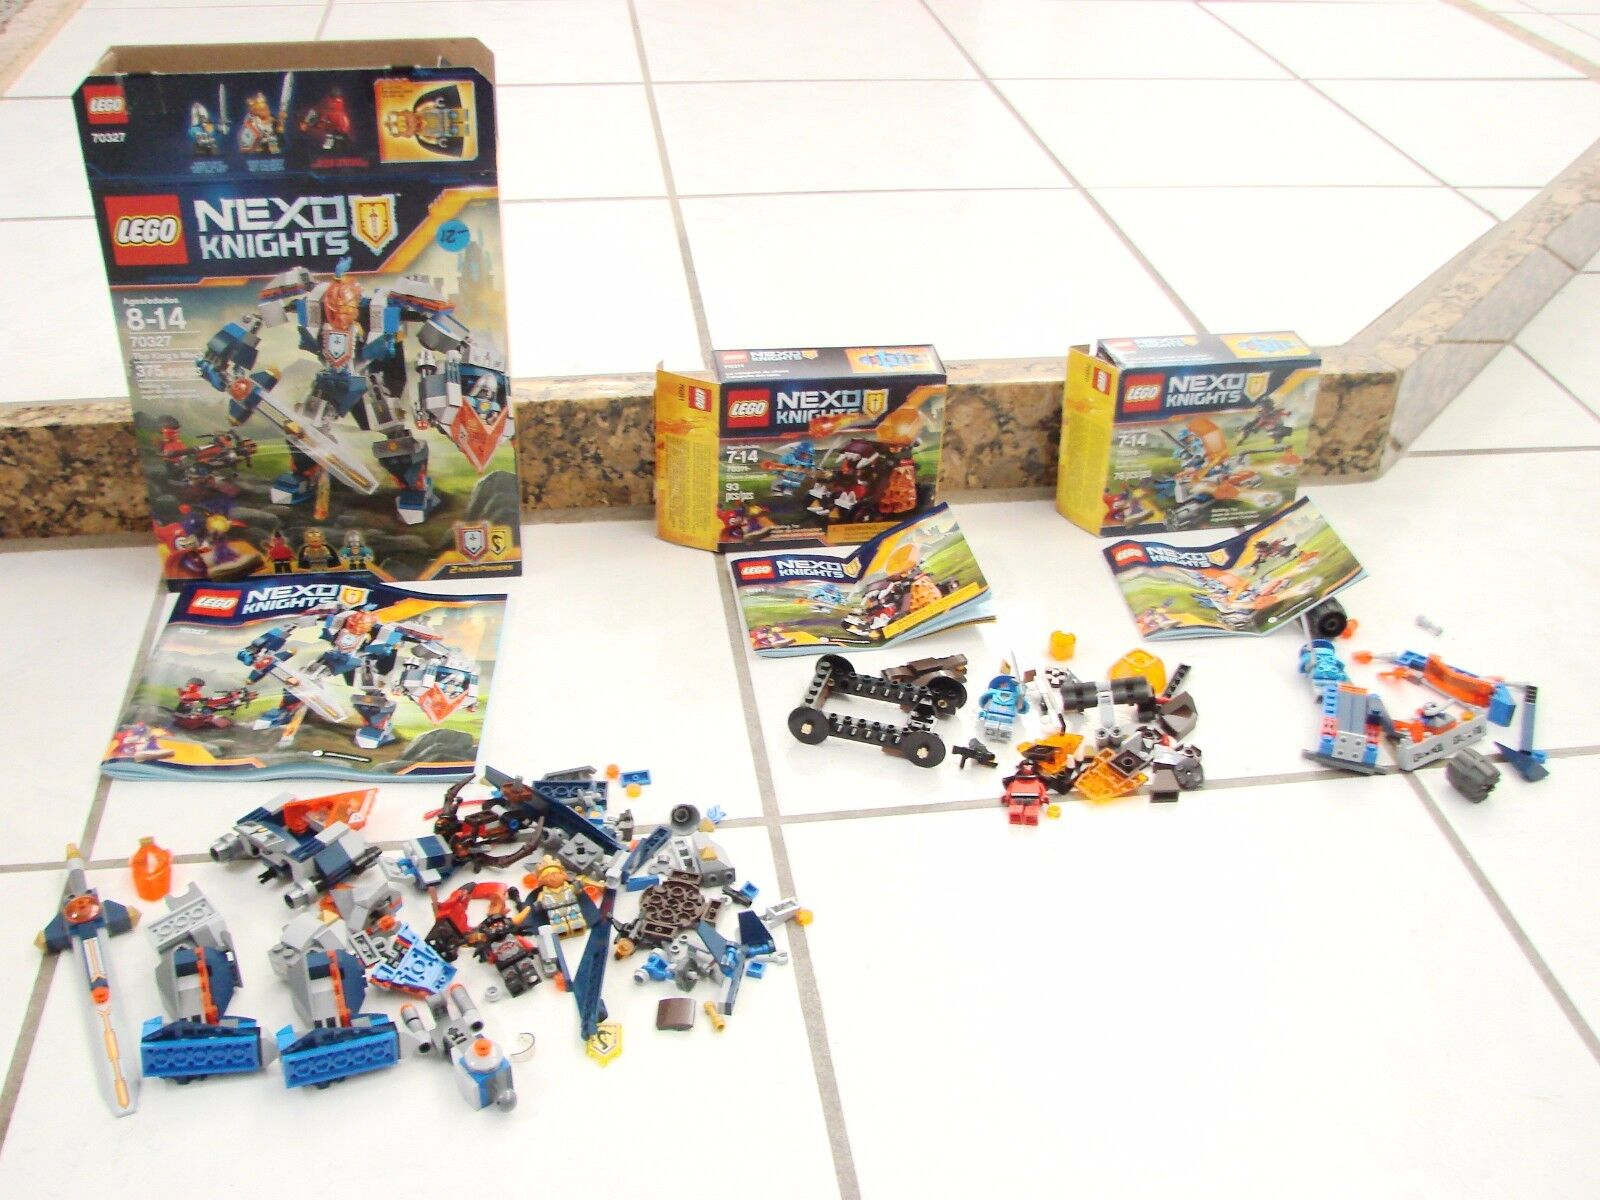 Nexu Knights Lot of 3 sets 70311 70327 70310  Figures Instructions, missing pcs